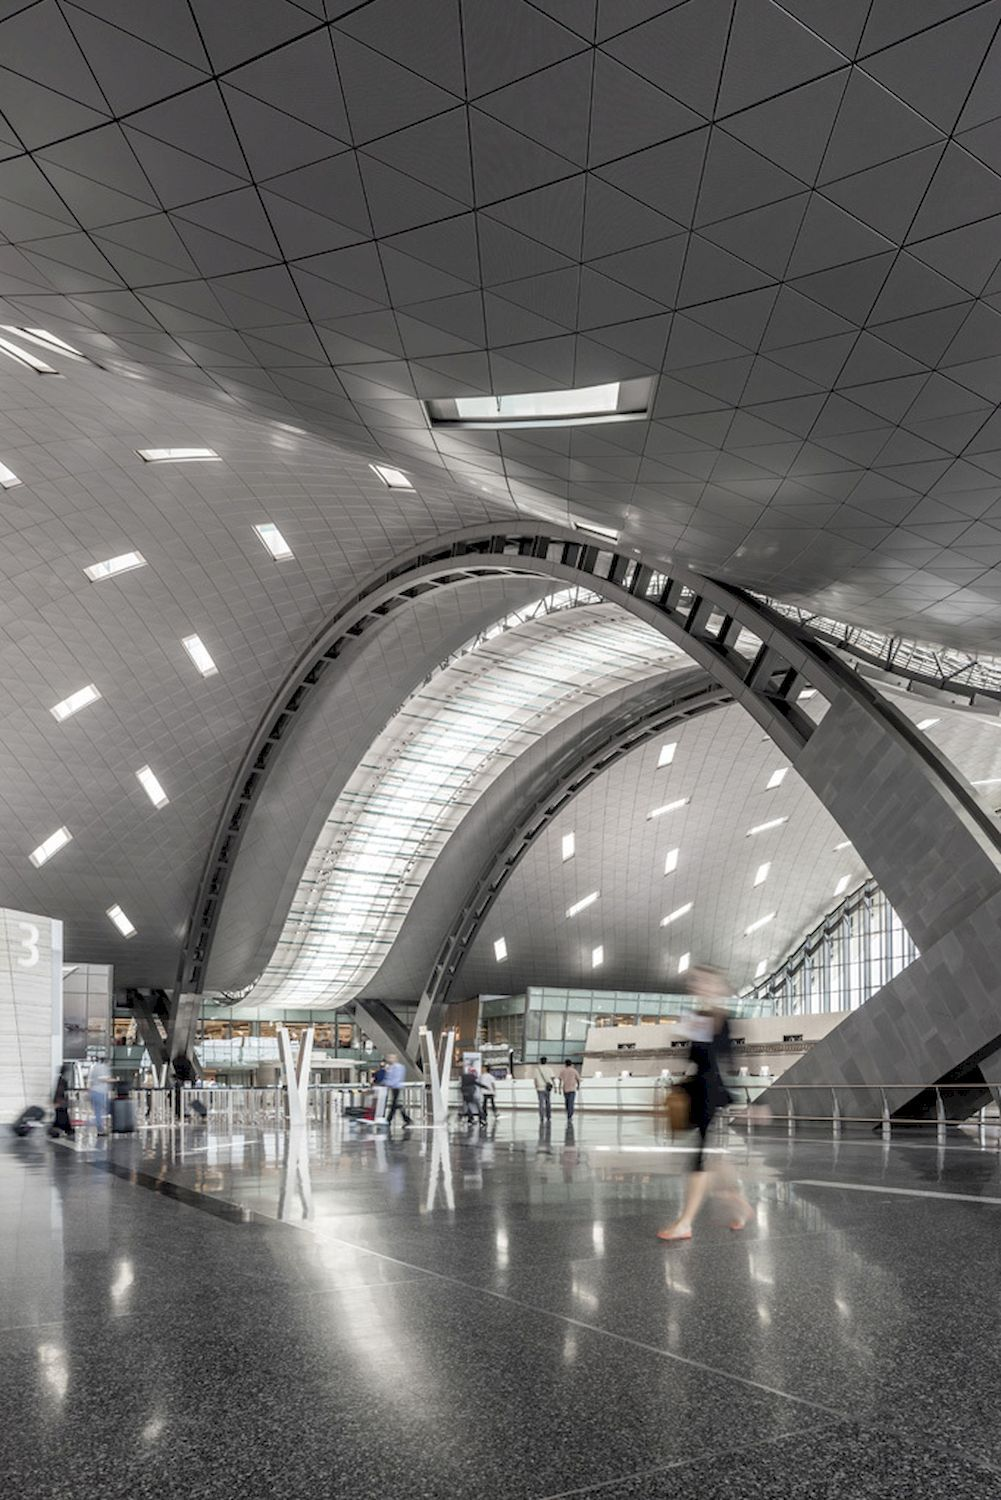 Pin On Architecture Airports